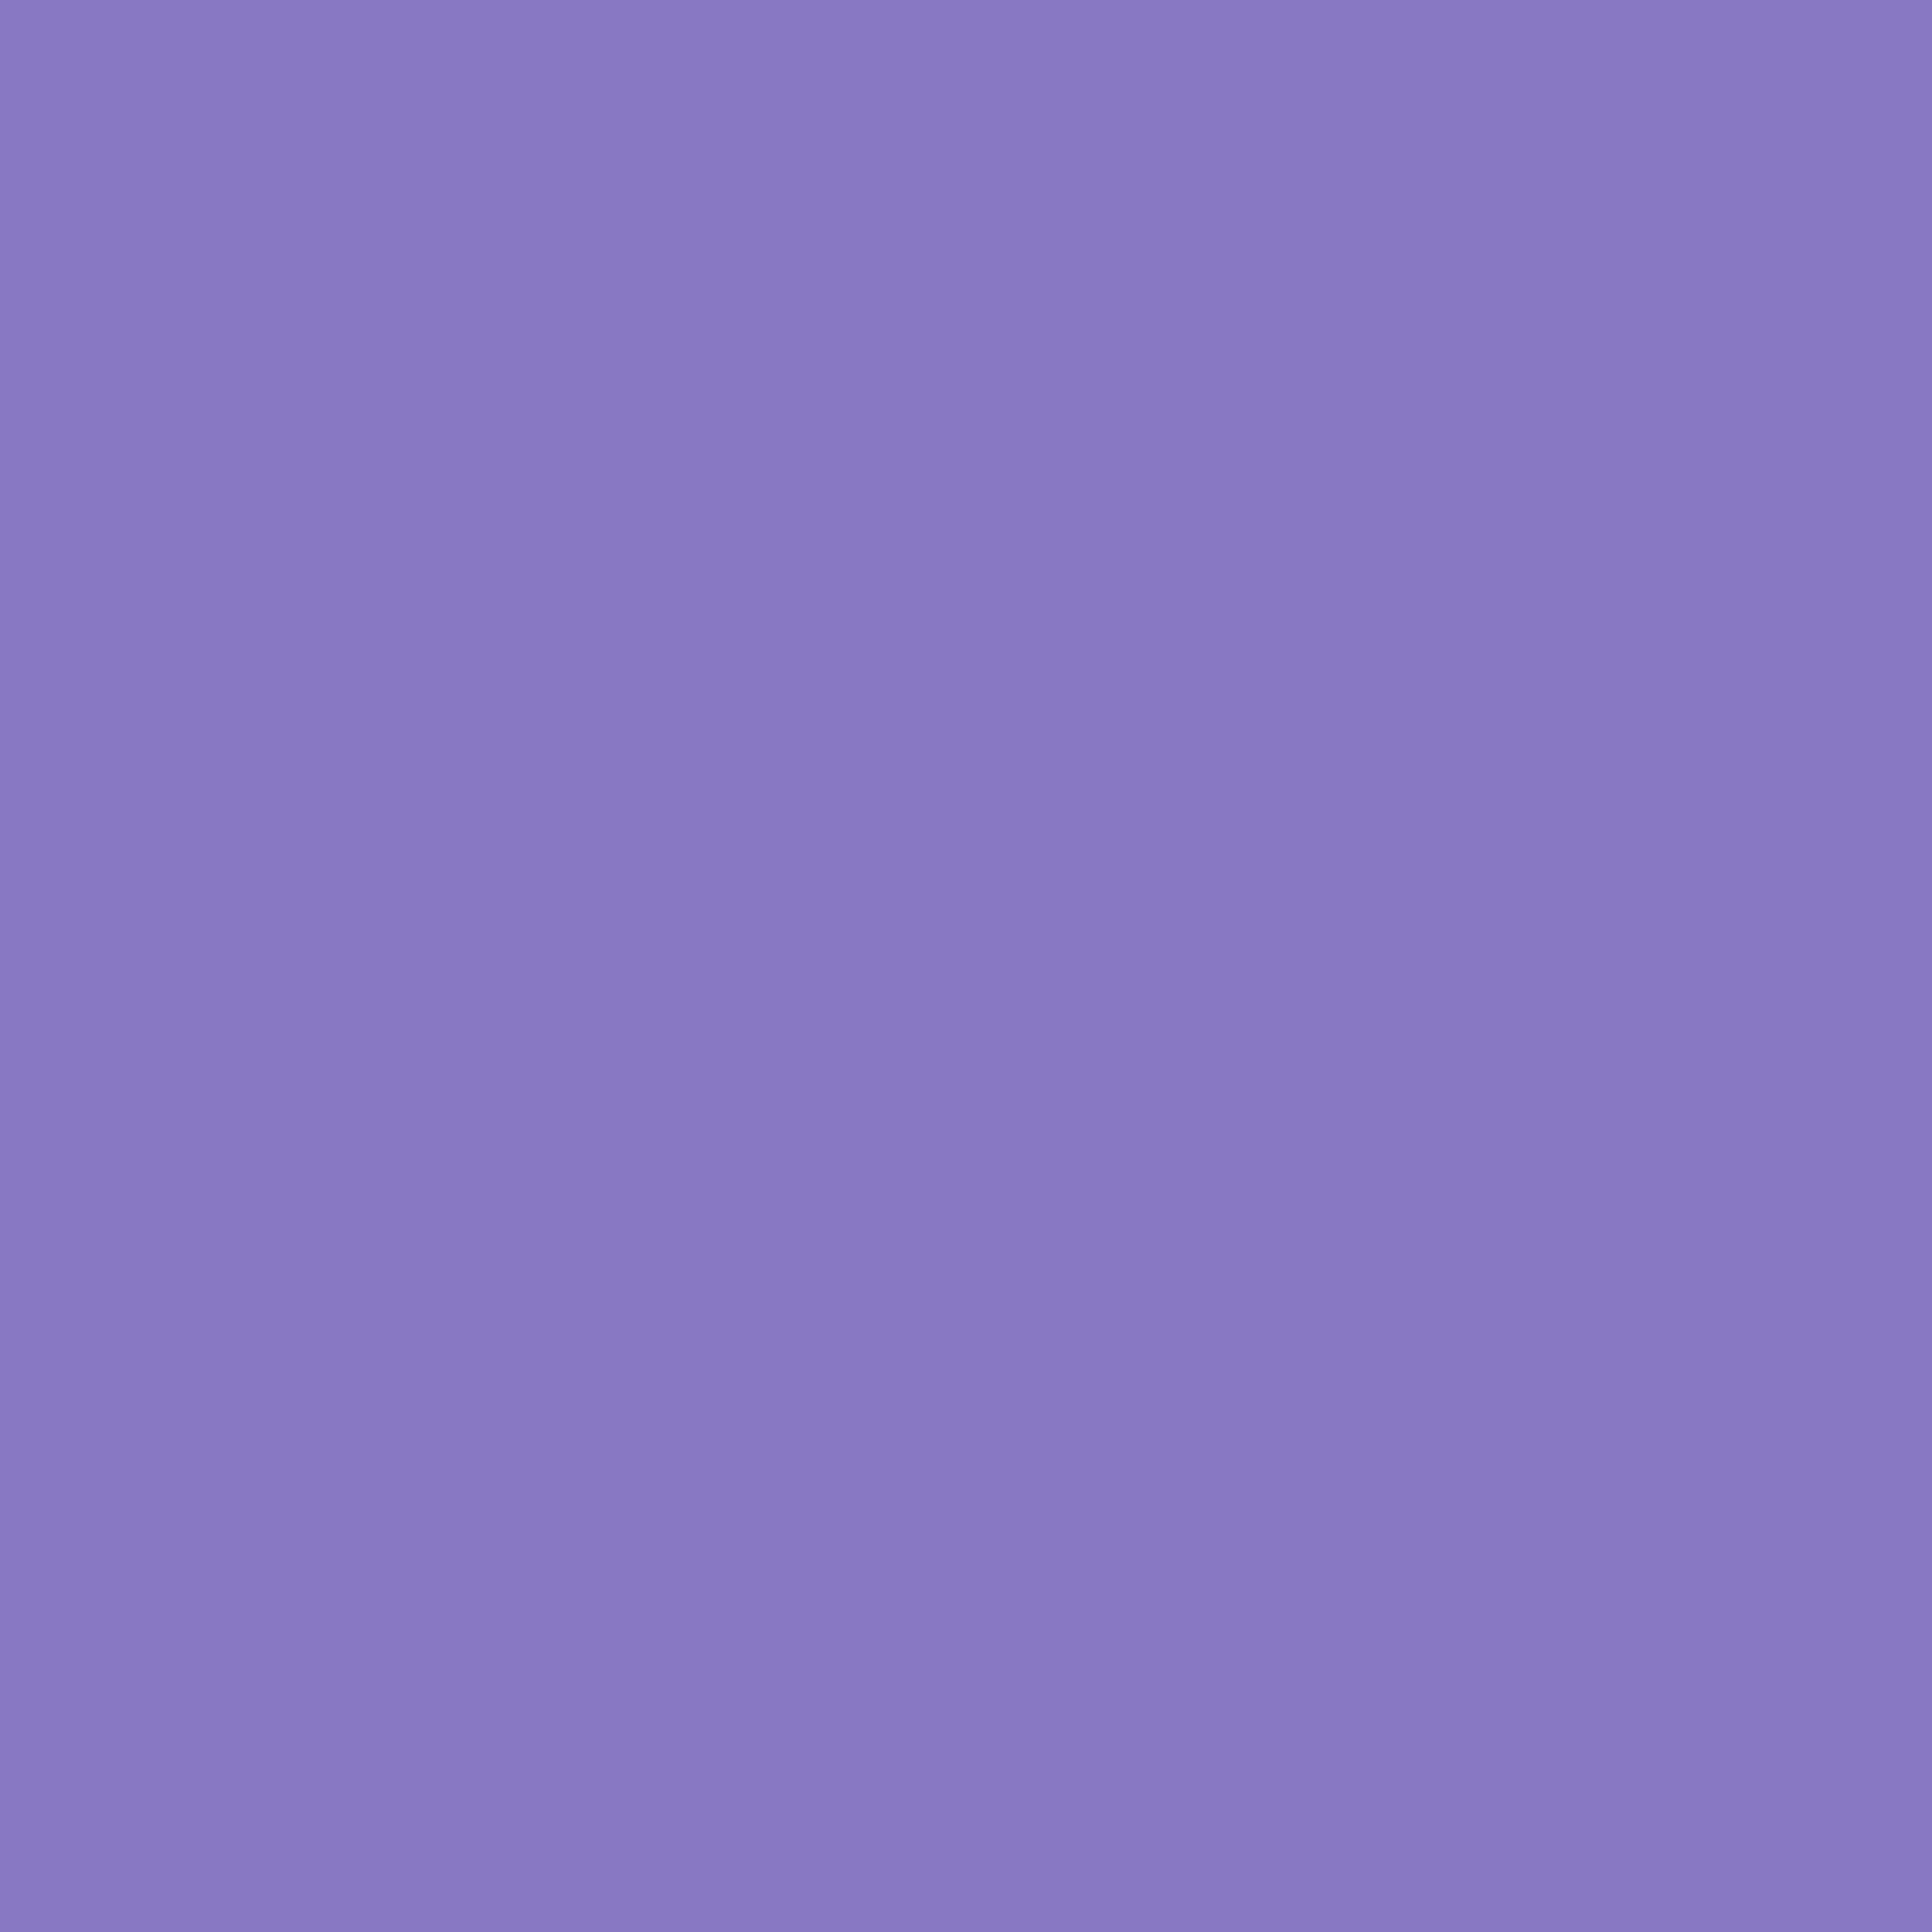 2732x2732 Ube Solid Color Background